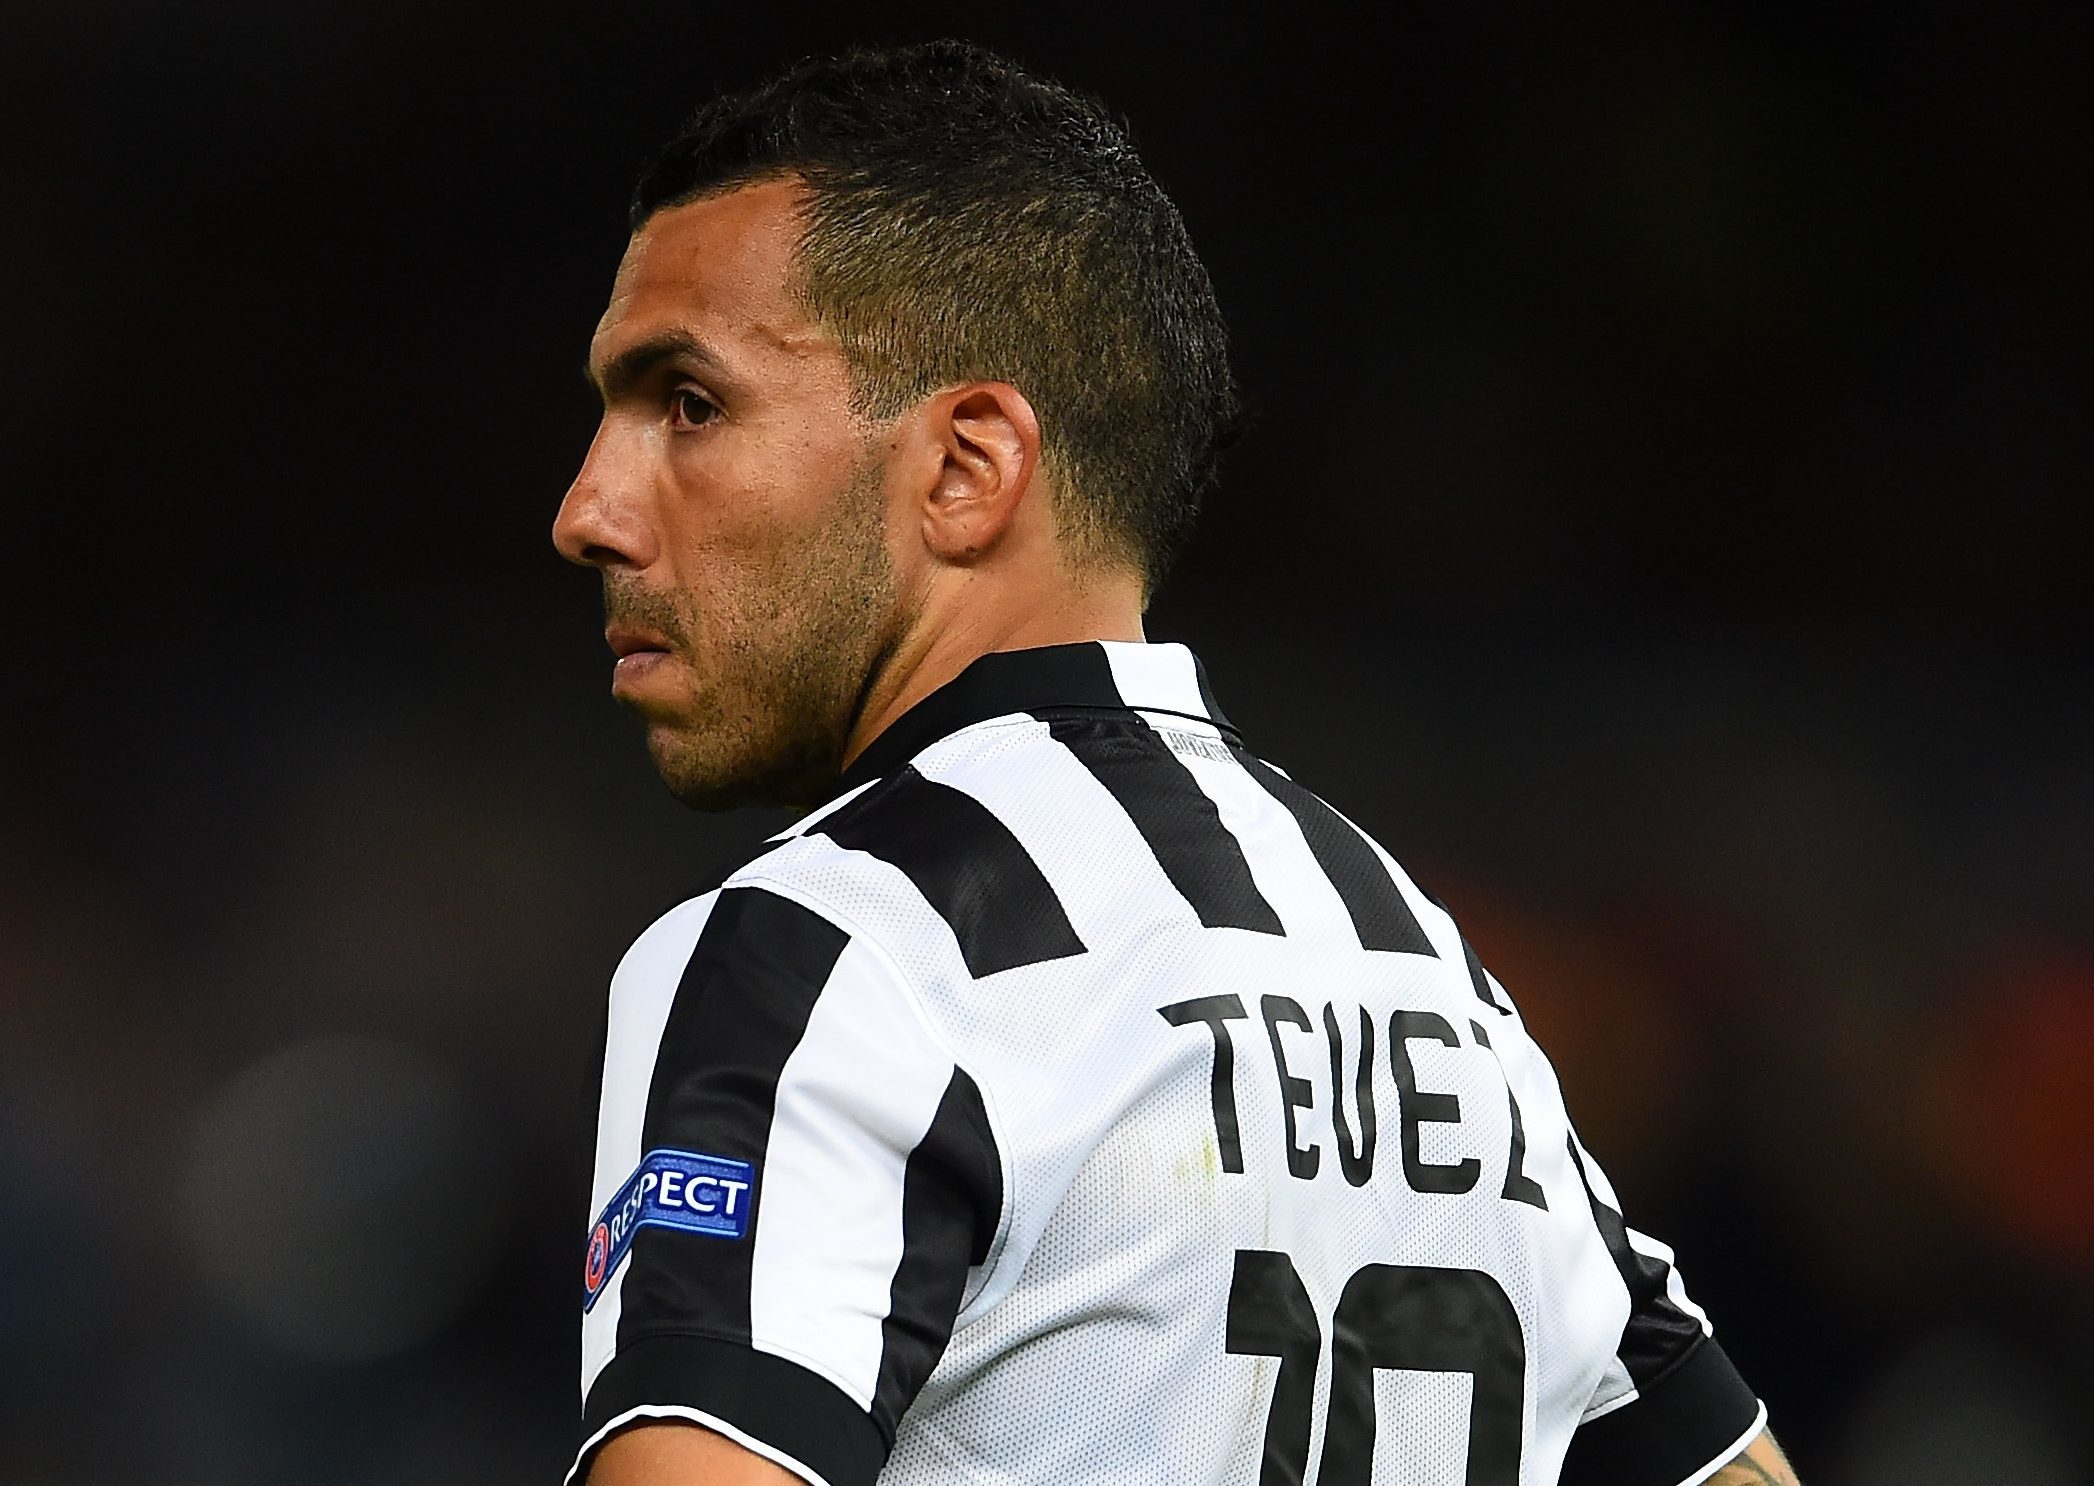 Part of the Chinese football revolution - Carlos Tevez.